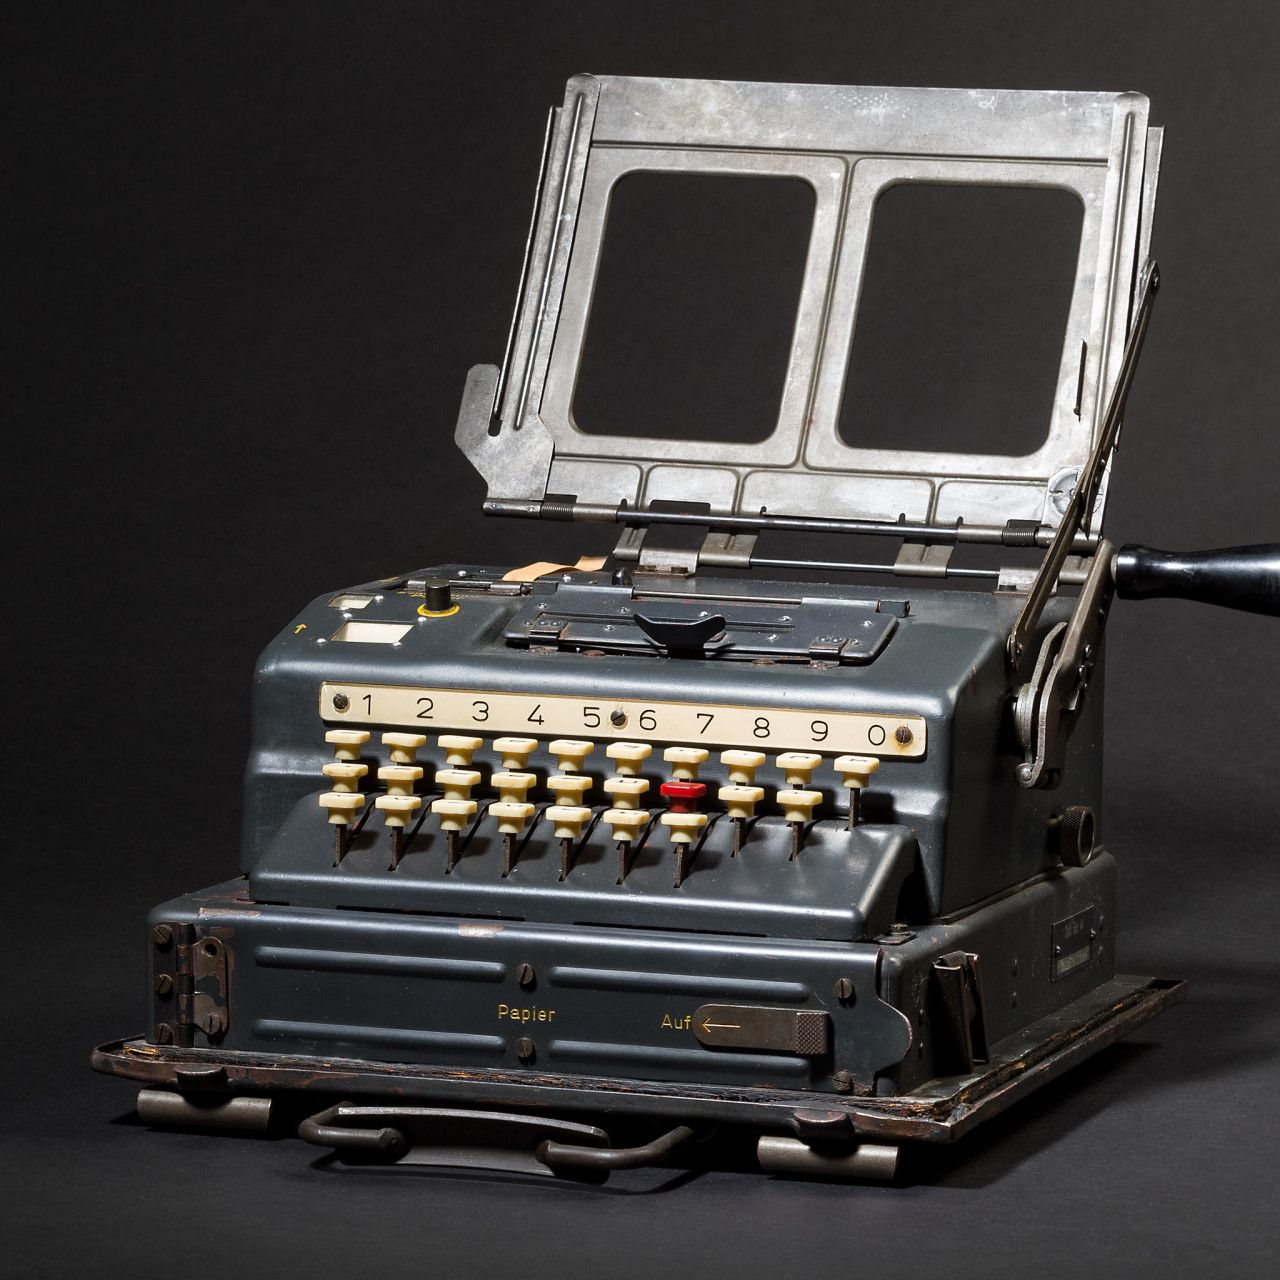 98,000 euros for the Schlüsselgerät 41 cipher machine